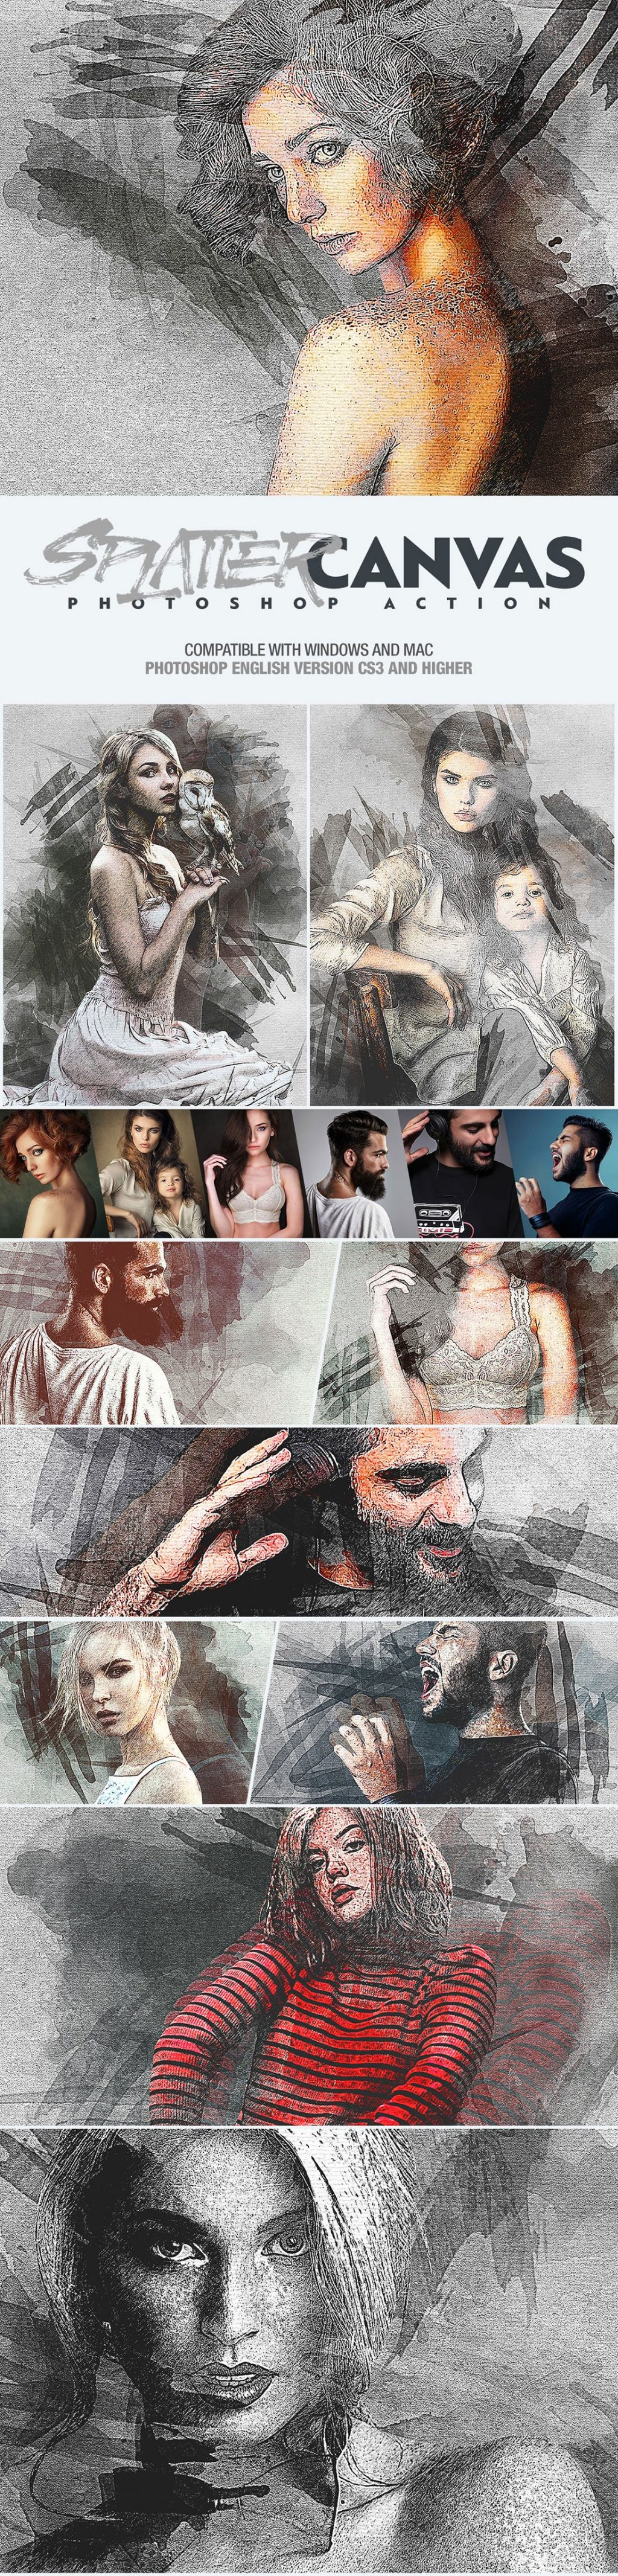 Photoshop Actions & Templates: Artistic Photo FX Bundle - splatter canvas photoshop action design by amorjesu